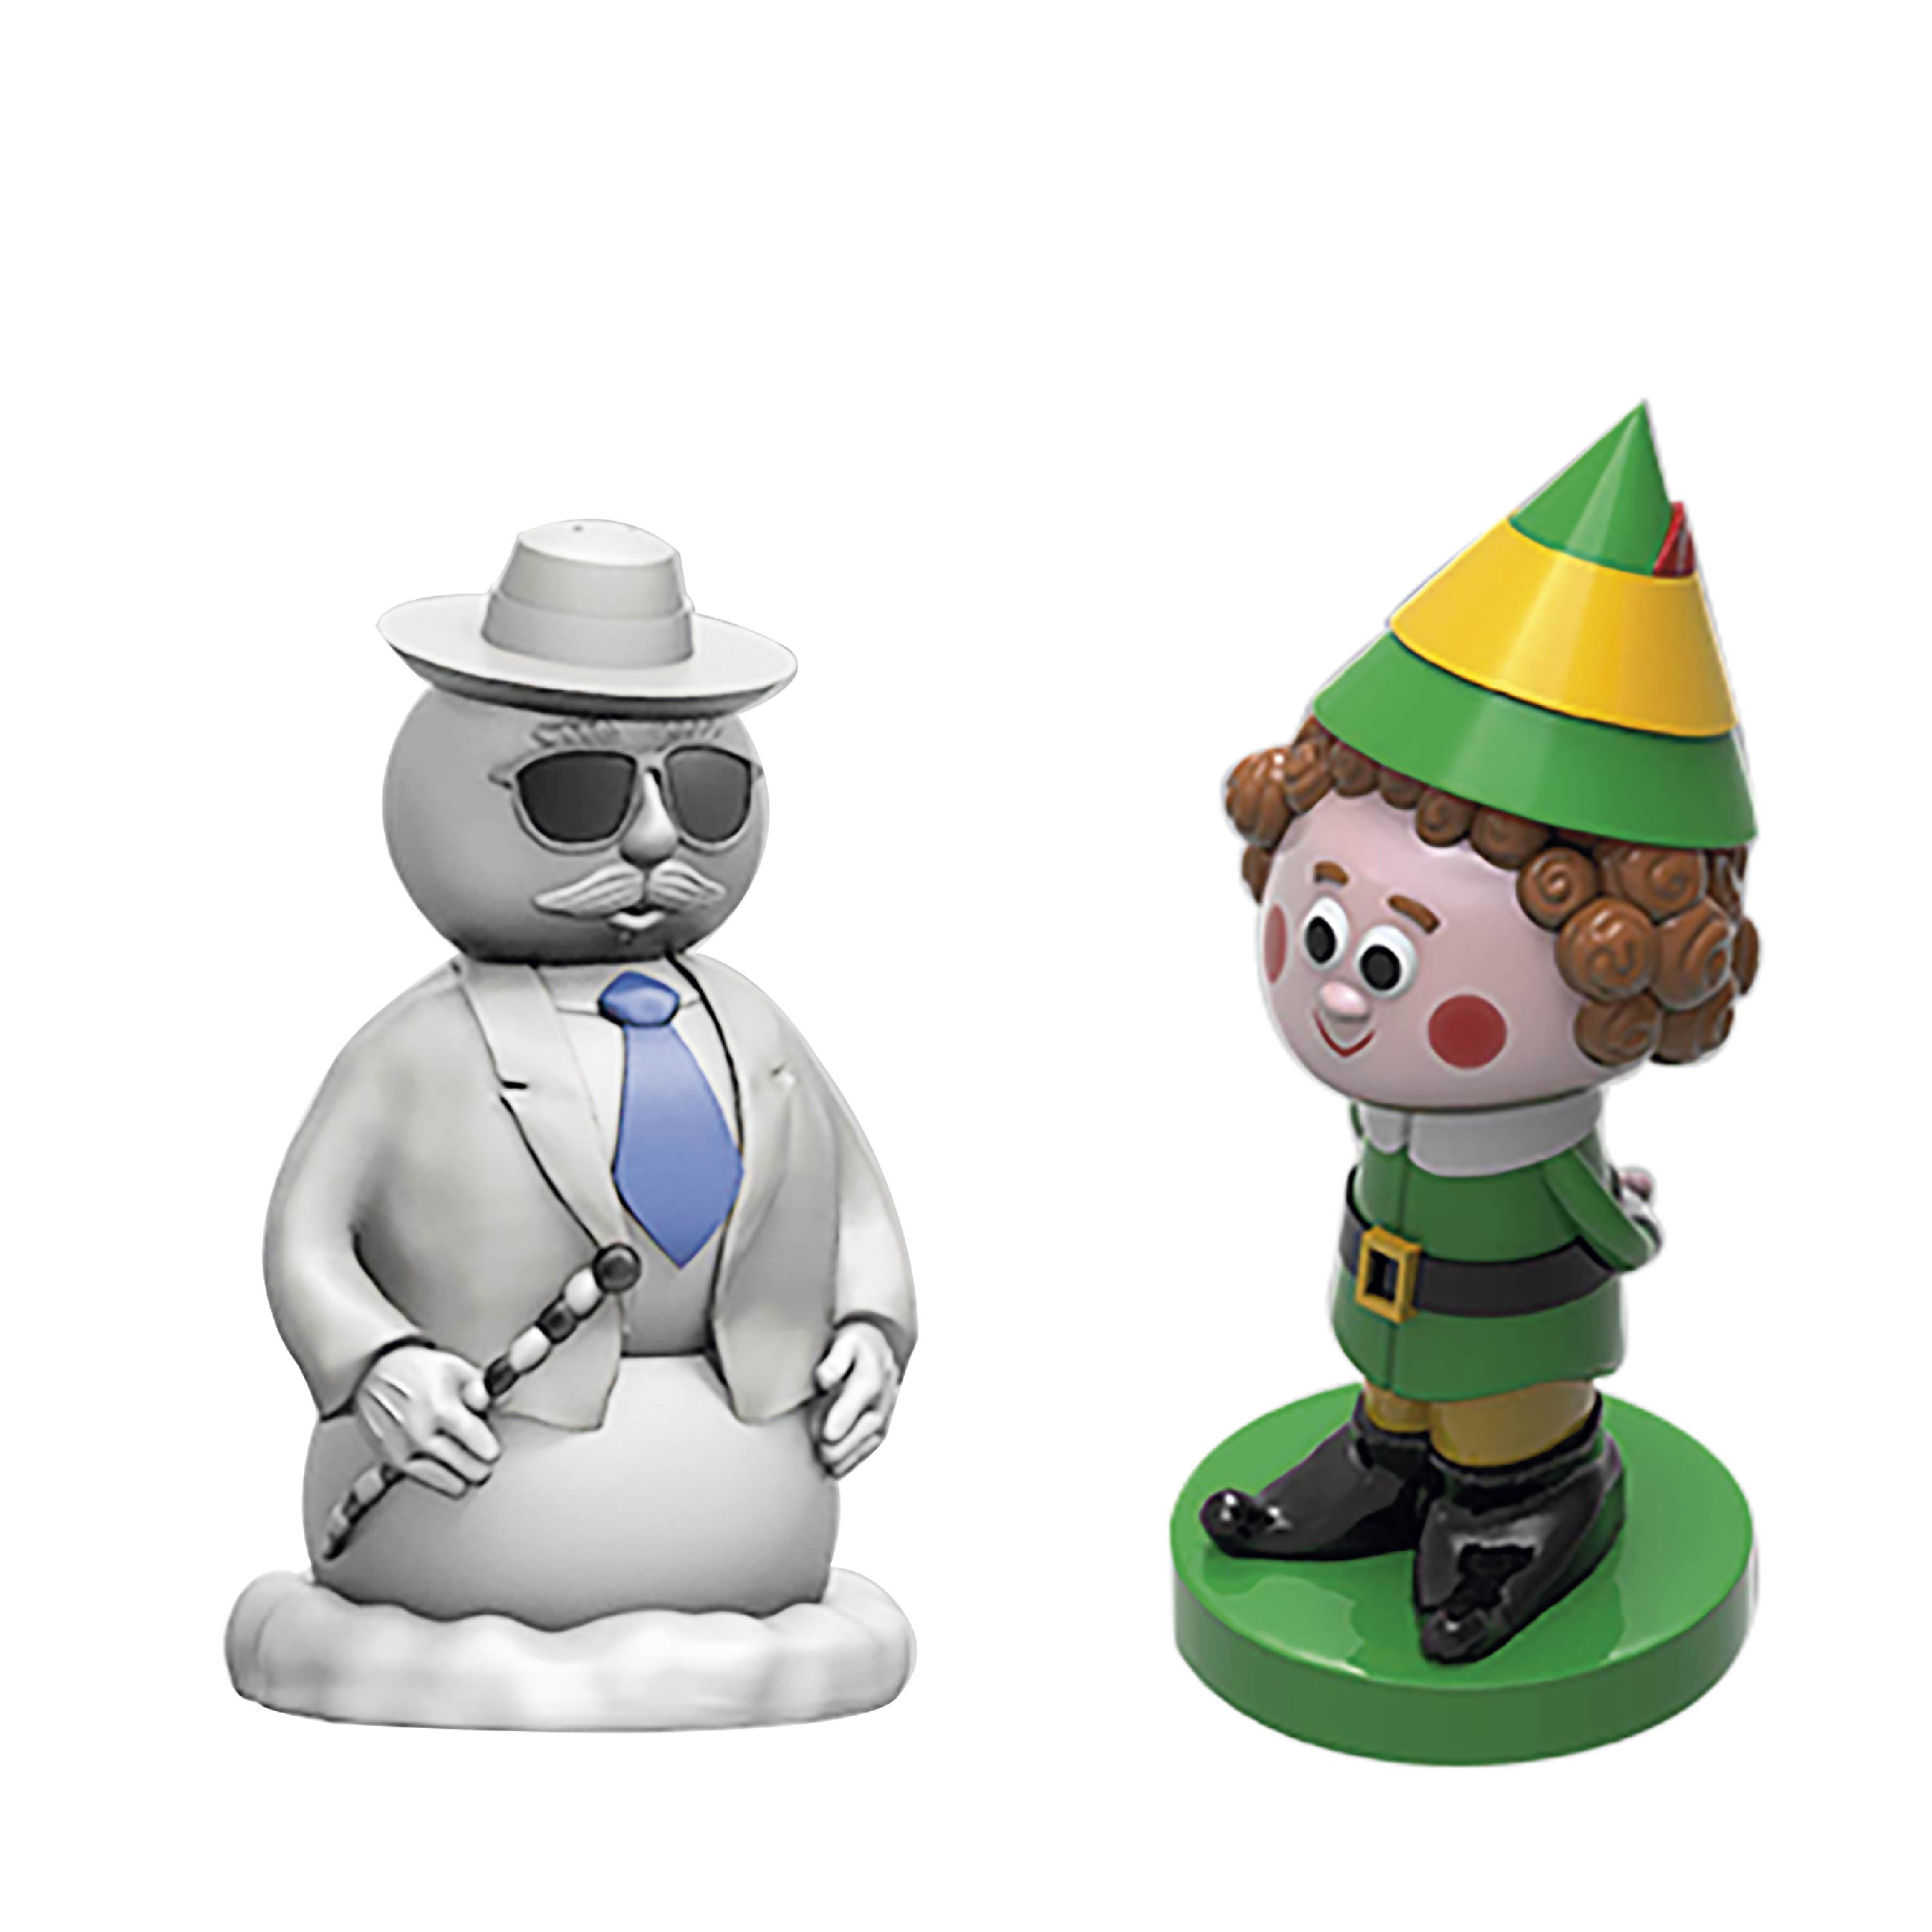 Christmas Collectibles Salt and Pepper Shaker Set, Elf & Snowman, 2-piece set slideshow image 5